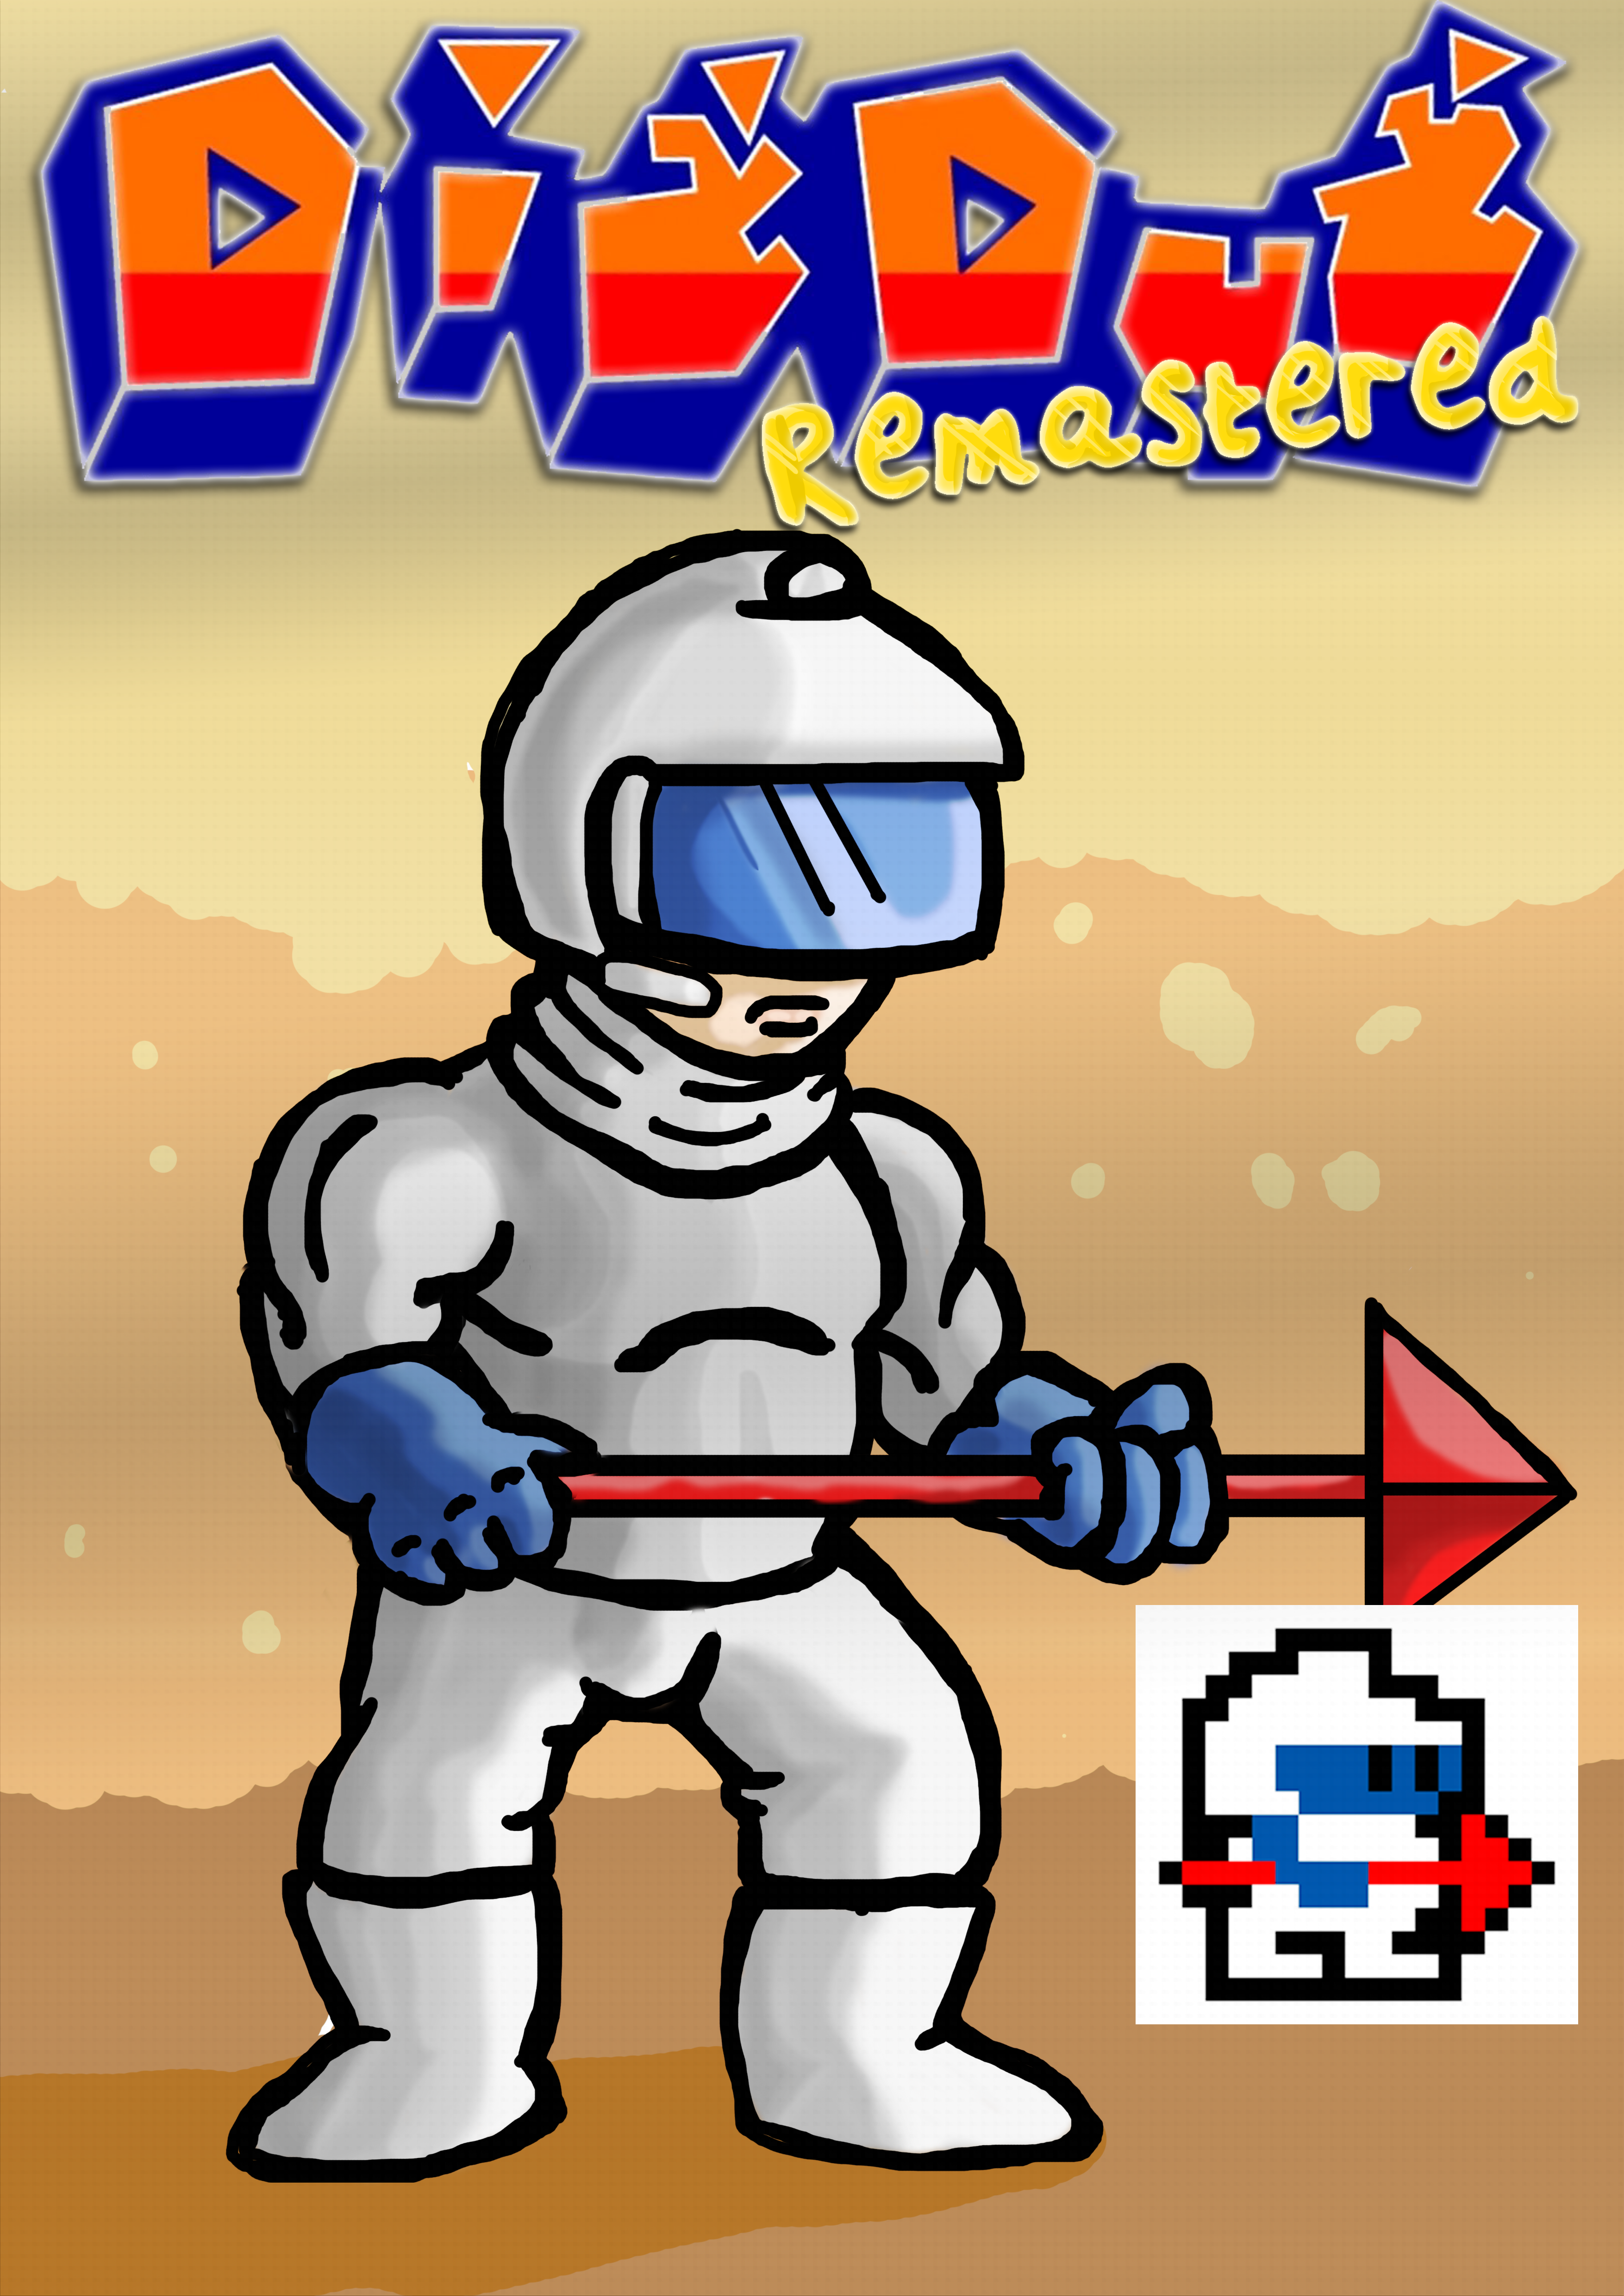 DigDug remastered